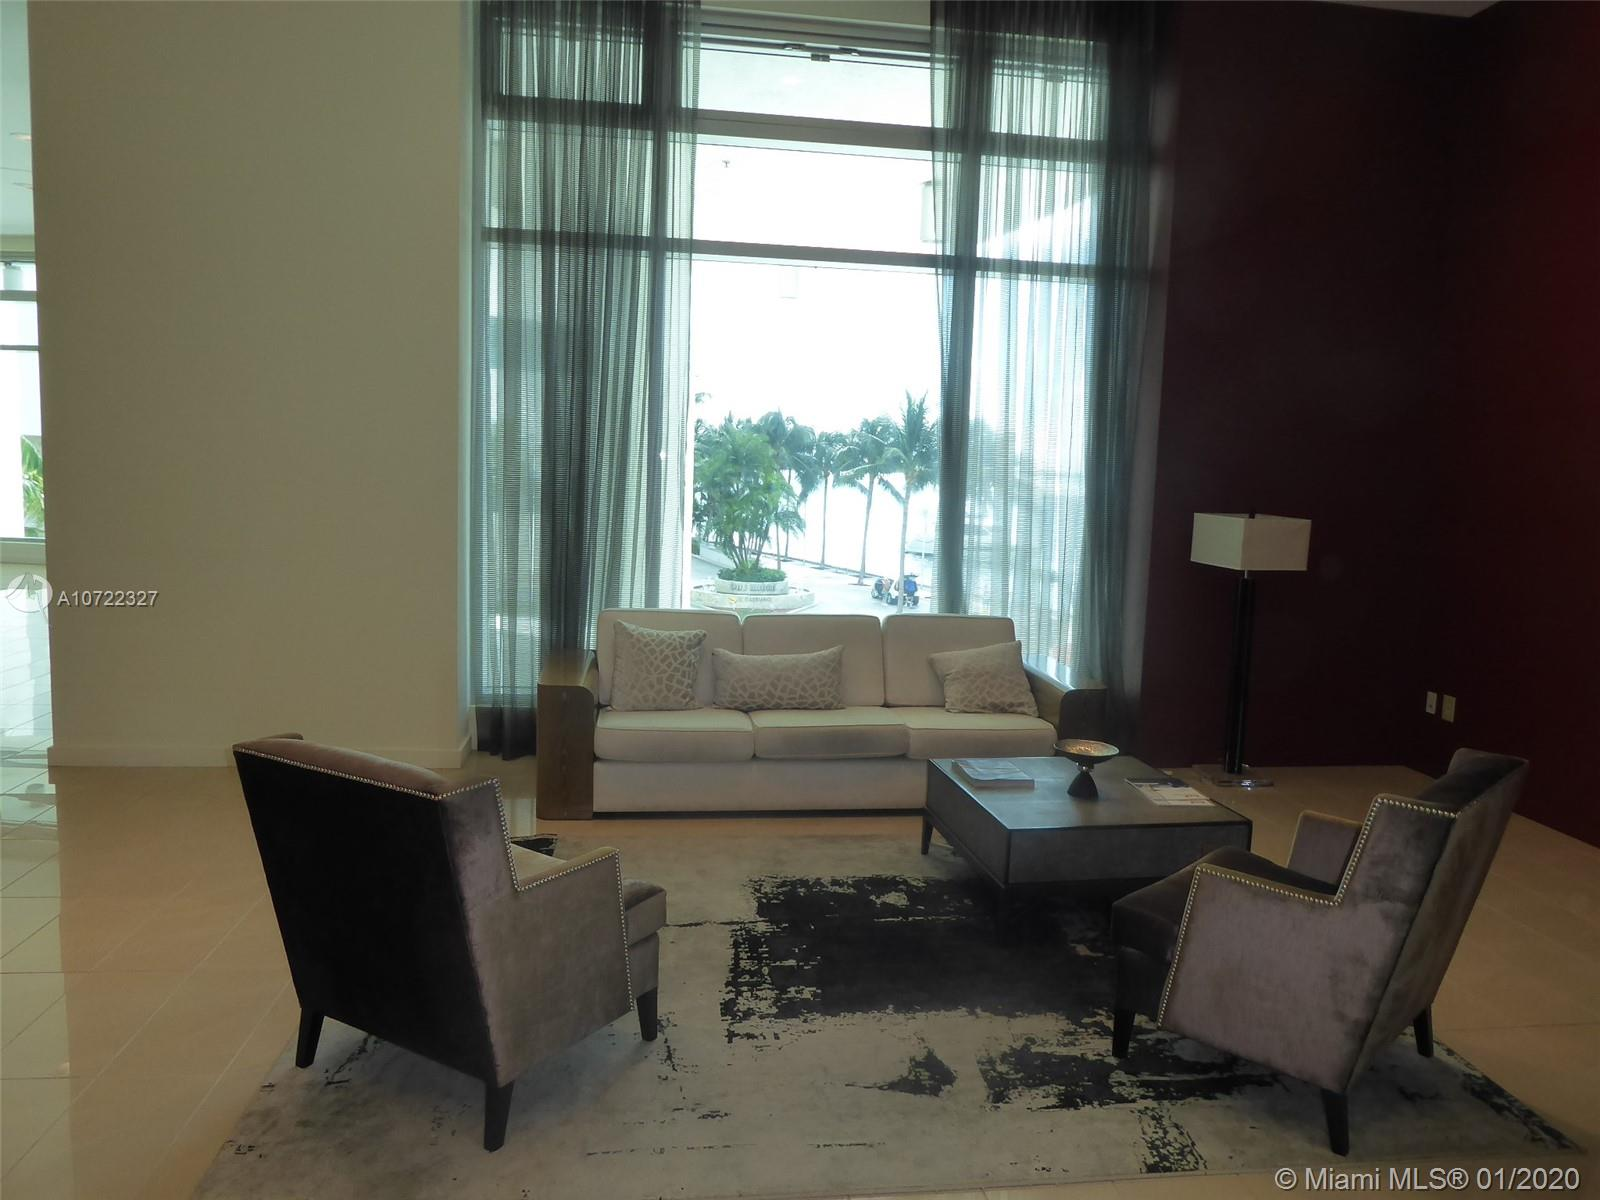 300 Biscayne blvd-PH 3802 miami-fl-33131-a10722327-Pic49